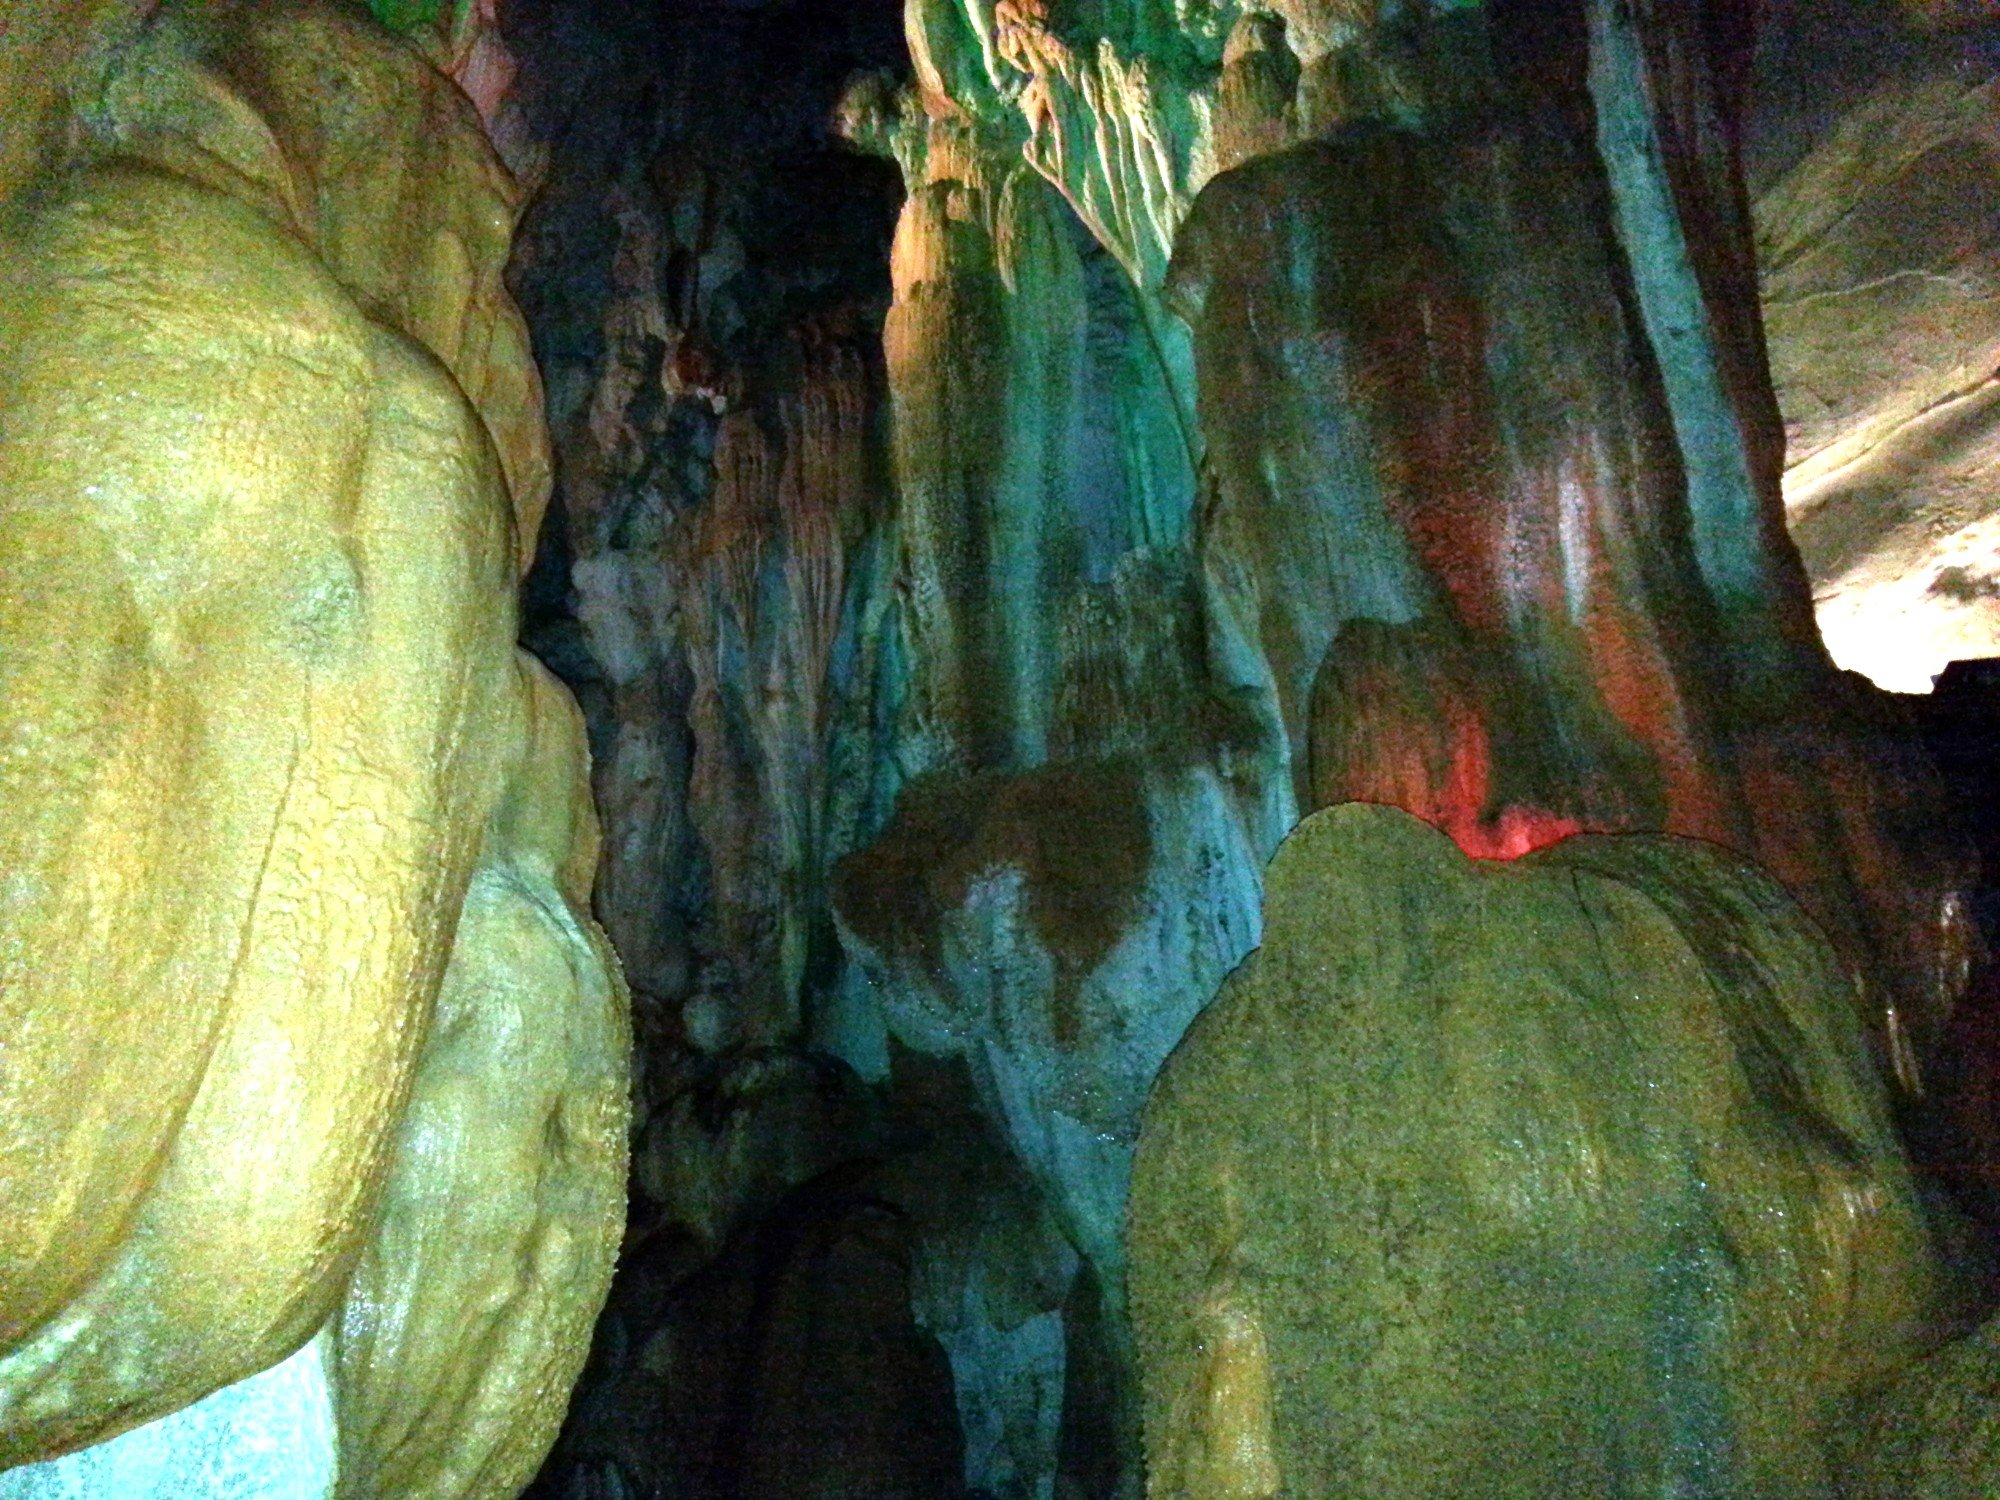 Stalactites and stalagmites in Tham Chang Cave